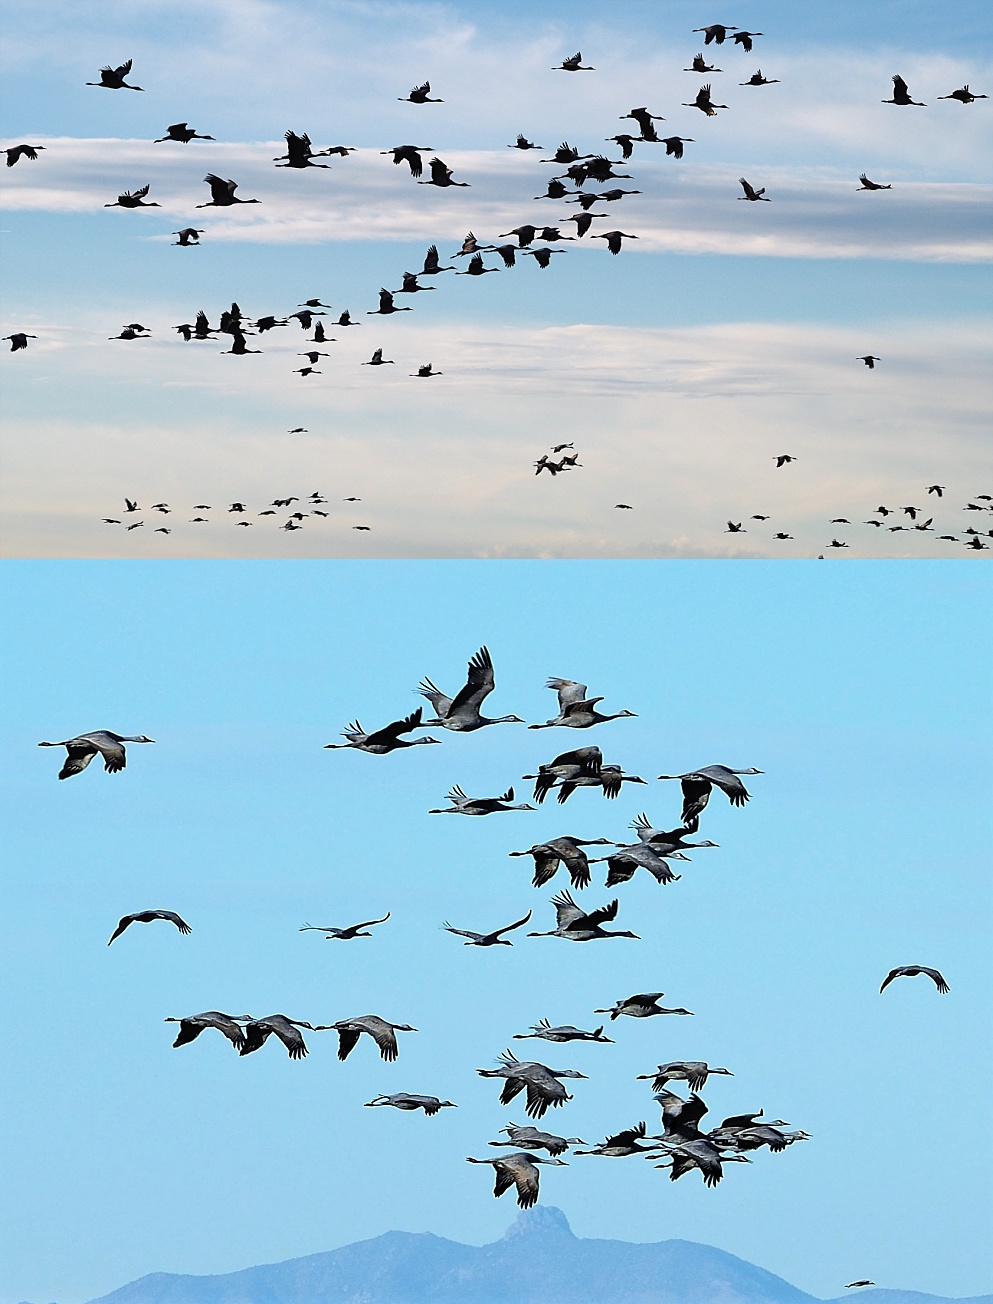 2-photo collage of flocks of sandhill cranes in flight